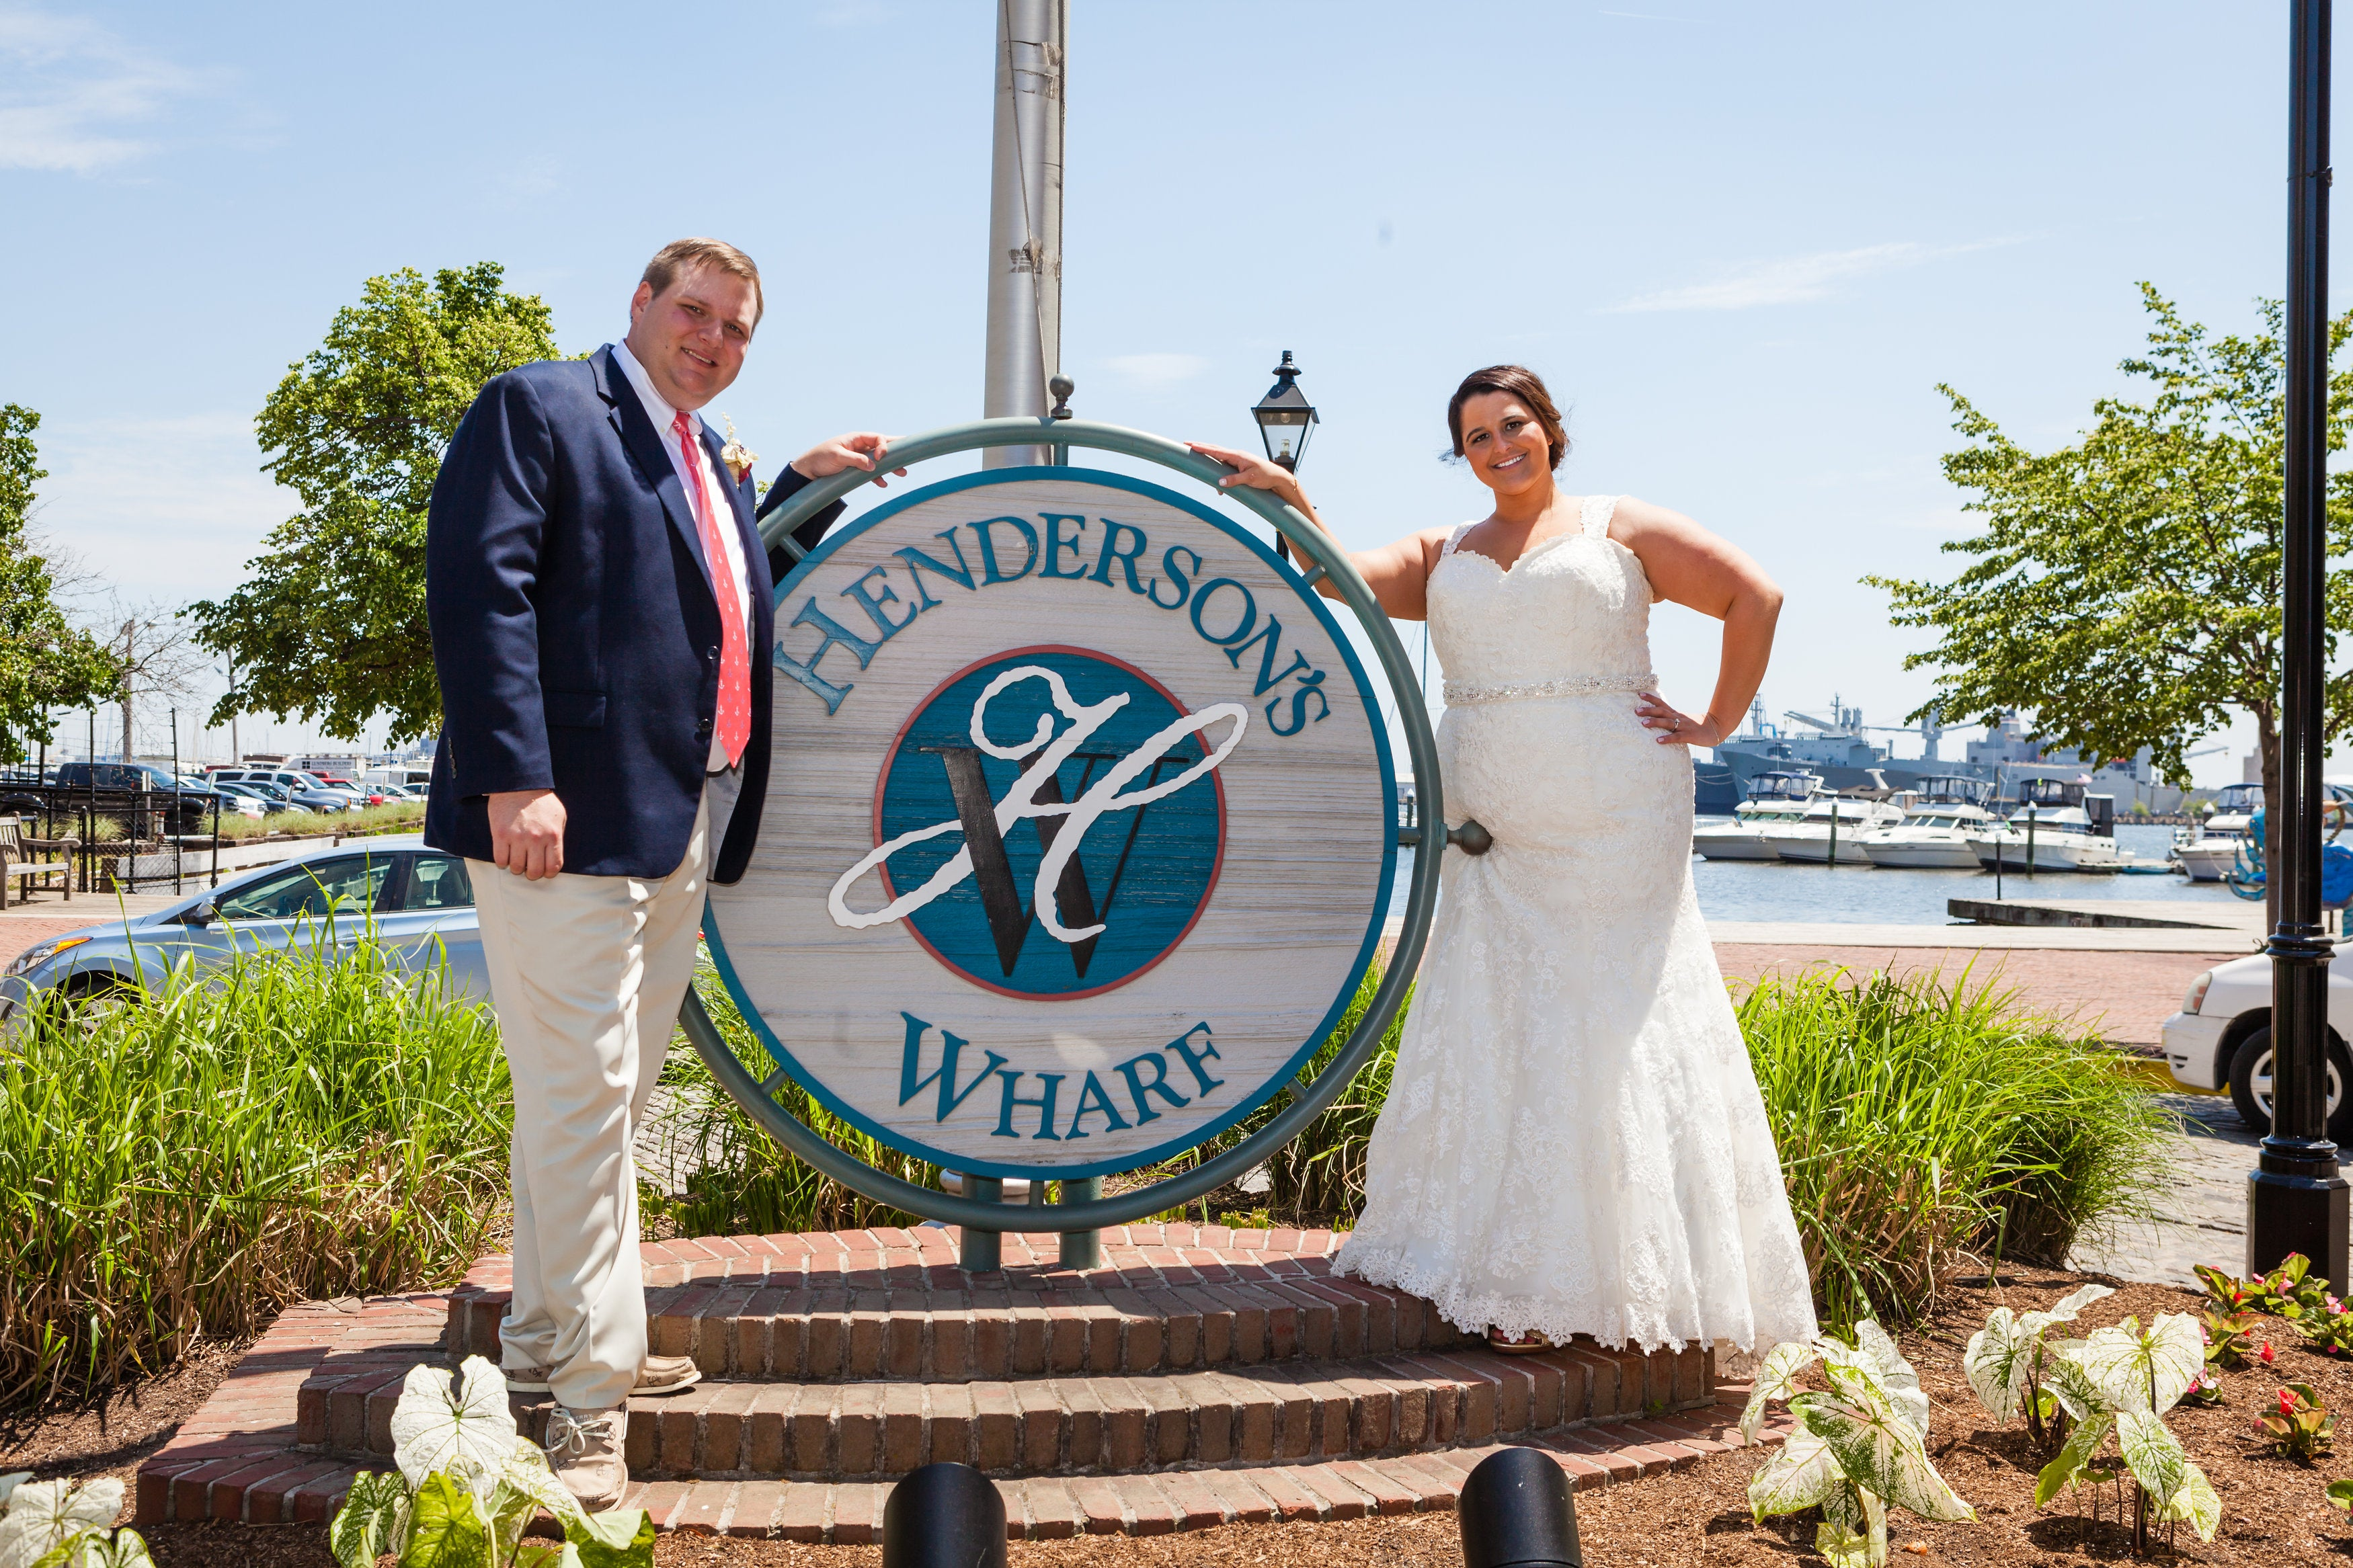 Henderson's Wharf Hotel,caring staff,fun,great location,great service,nice rooms,waterfront view